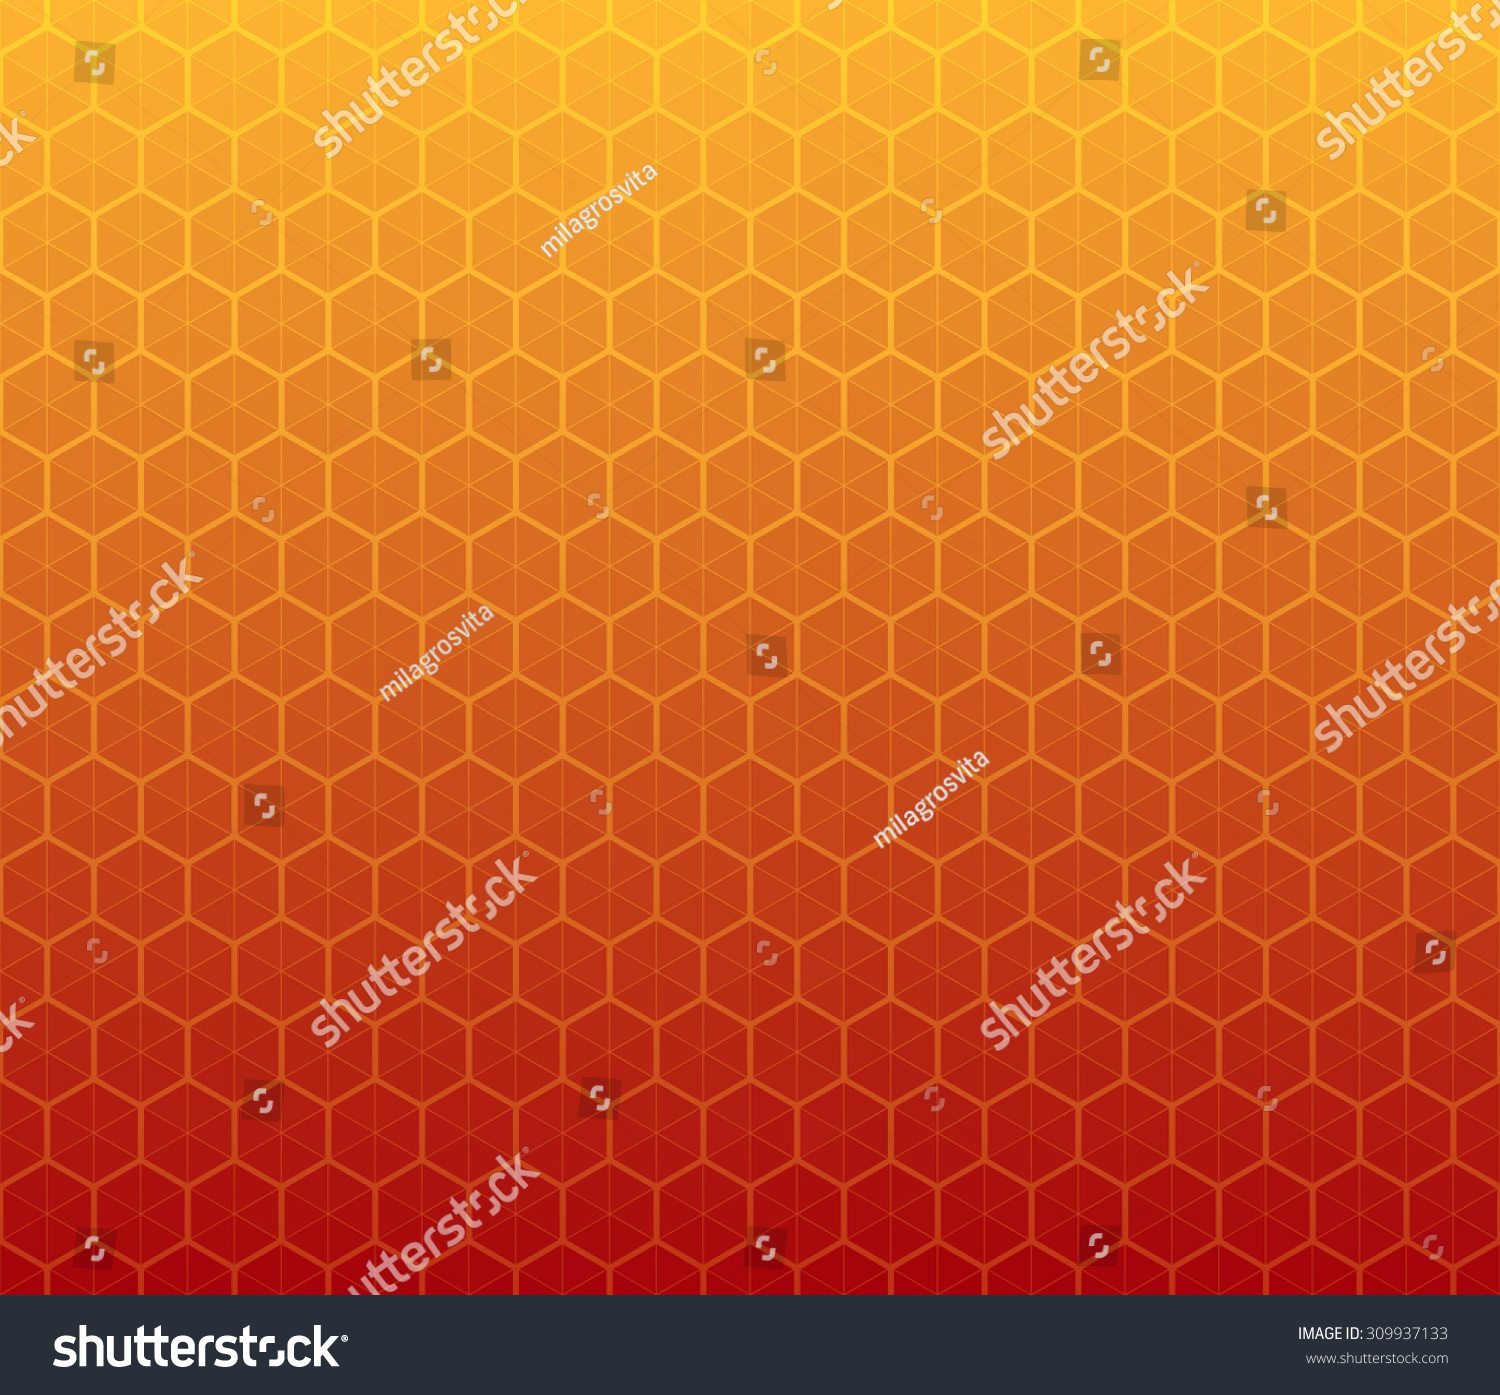 Honeycomb Inspired Abstract Geometric Background Hexagons